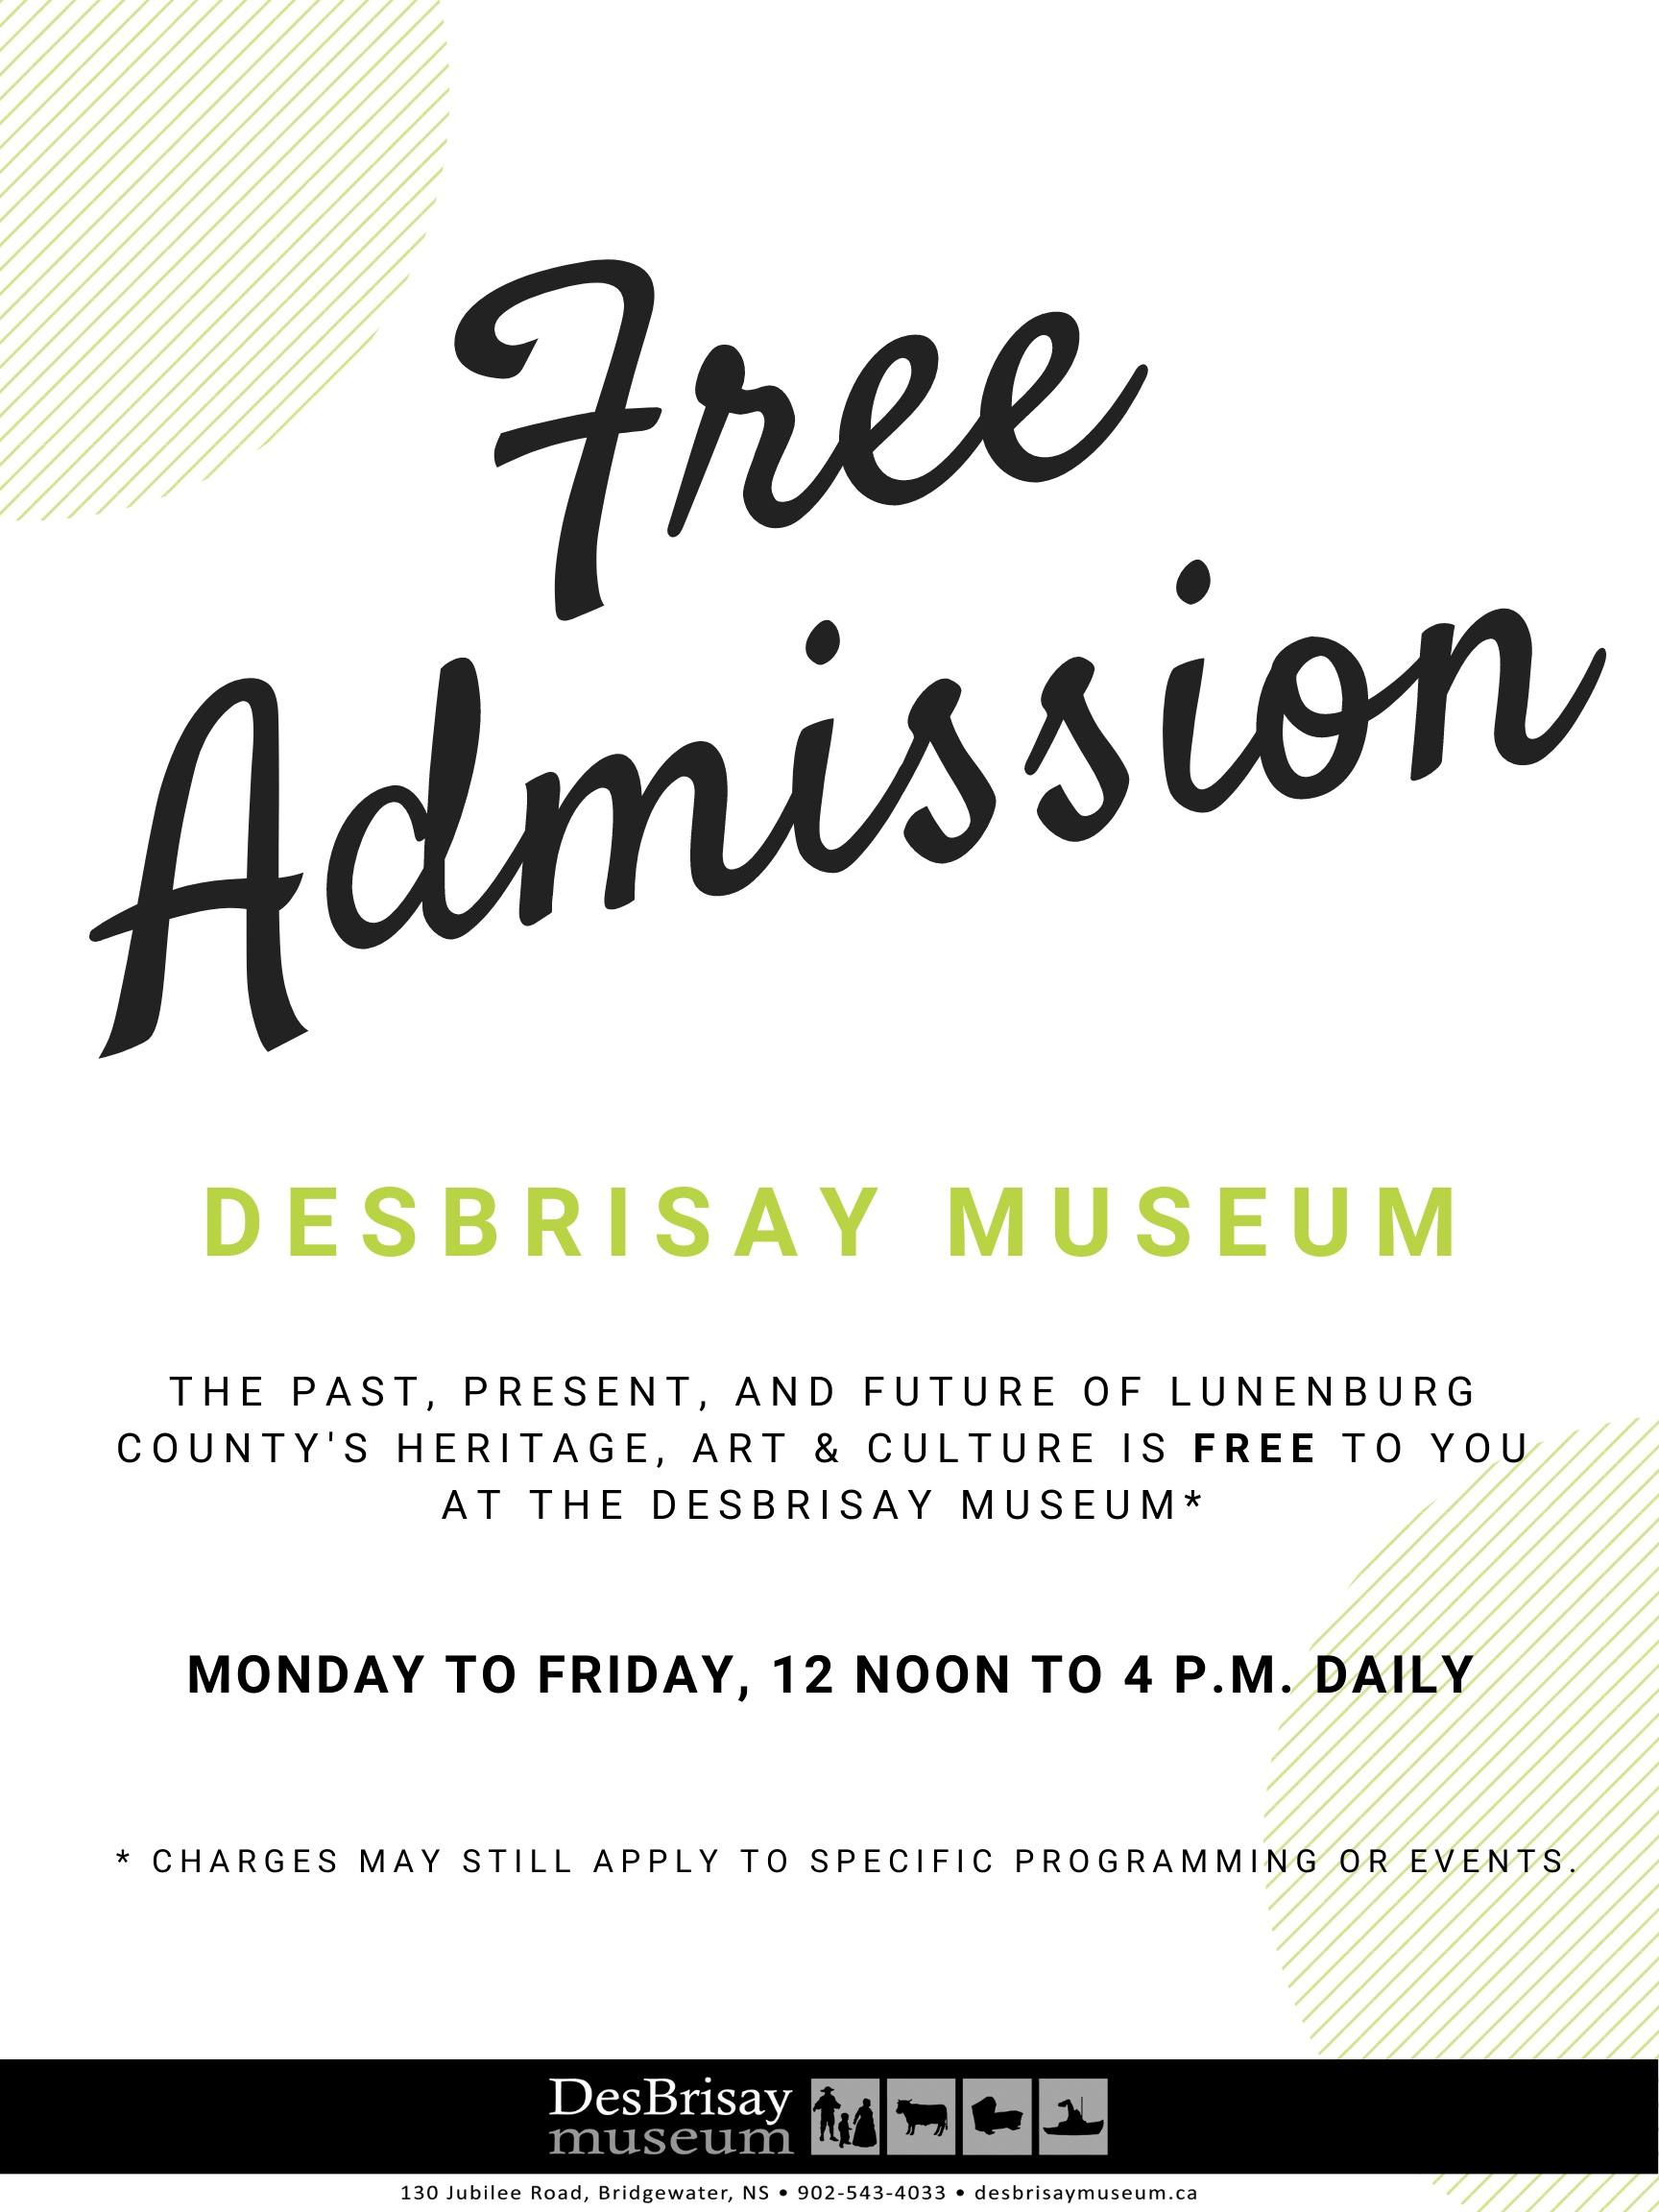 Copy of FREE ADMISSION